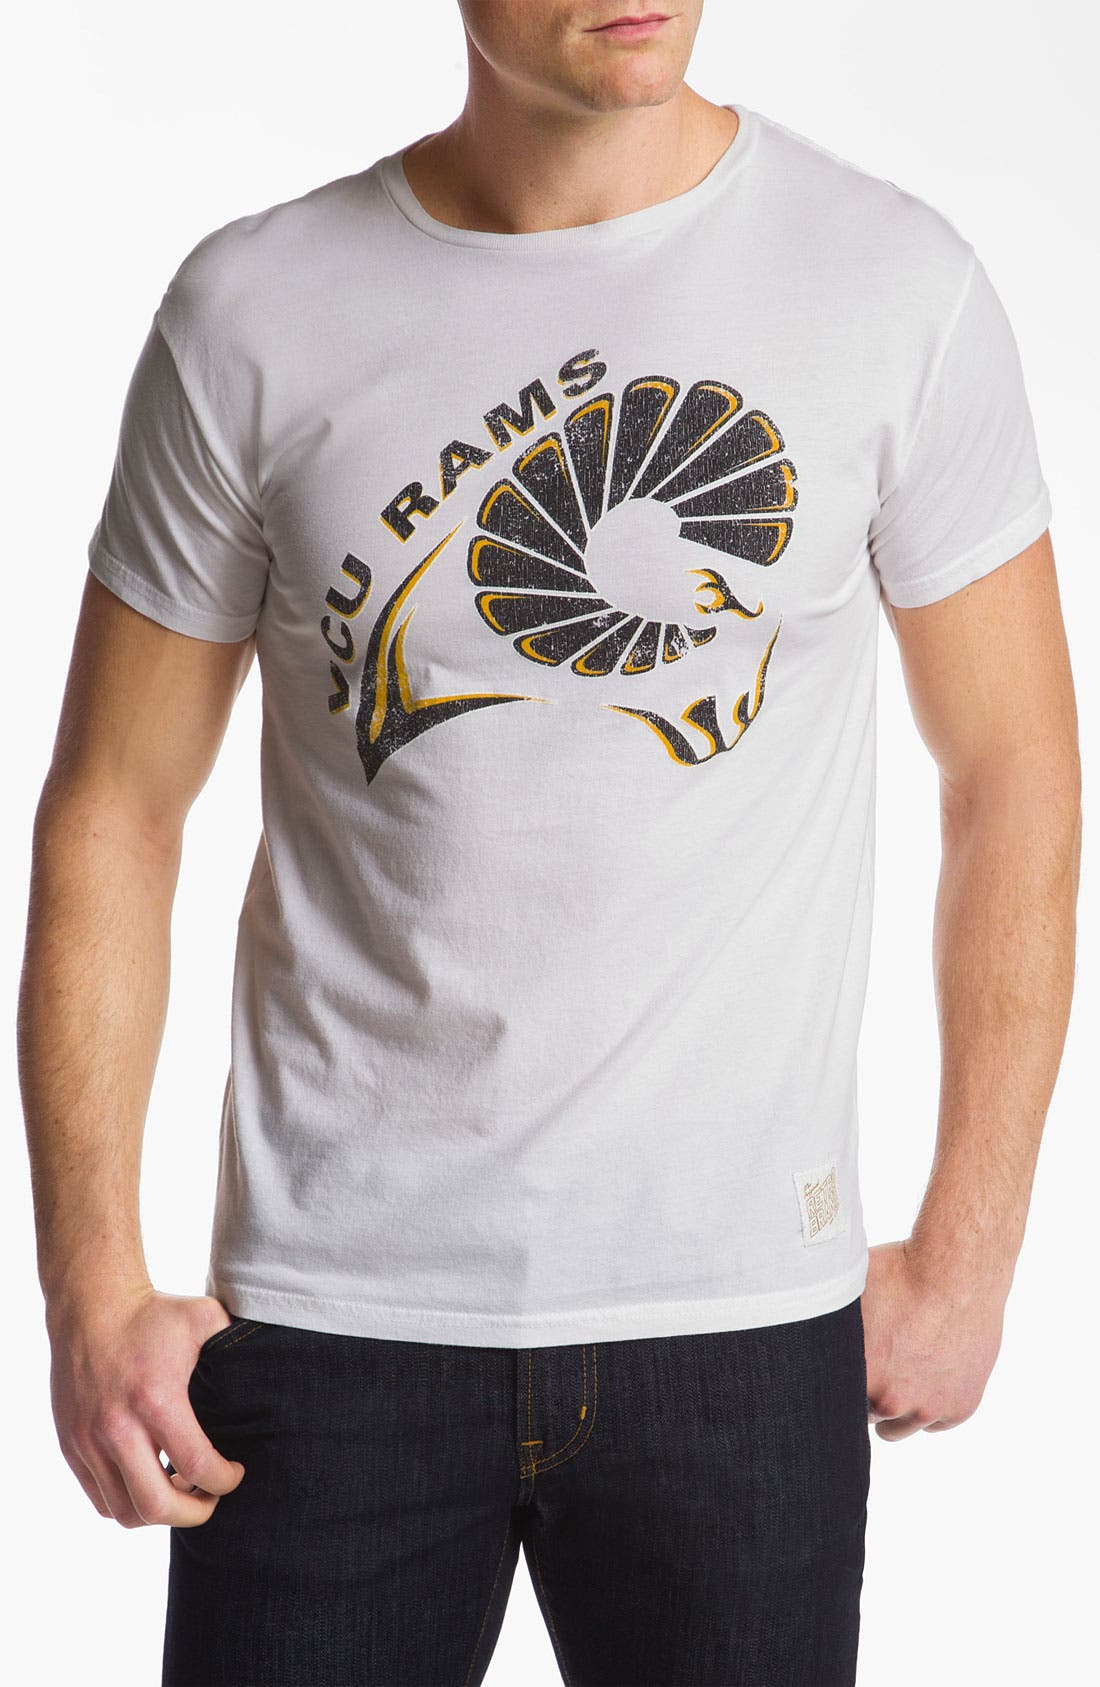 Main Image - The Original Retro Brand 'Virginia Commonwealth Rams' T-Shirt